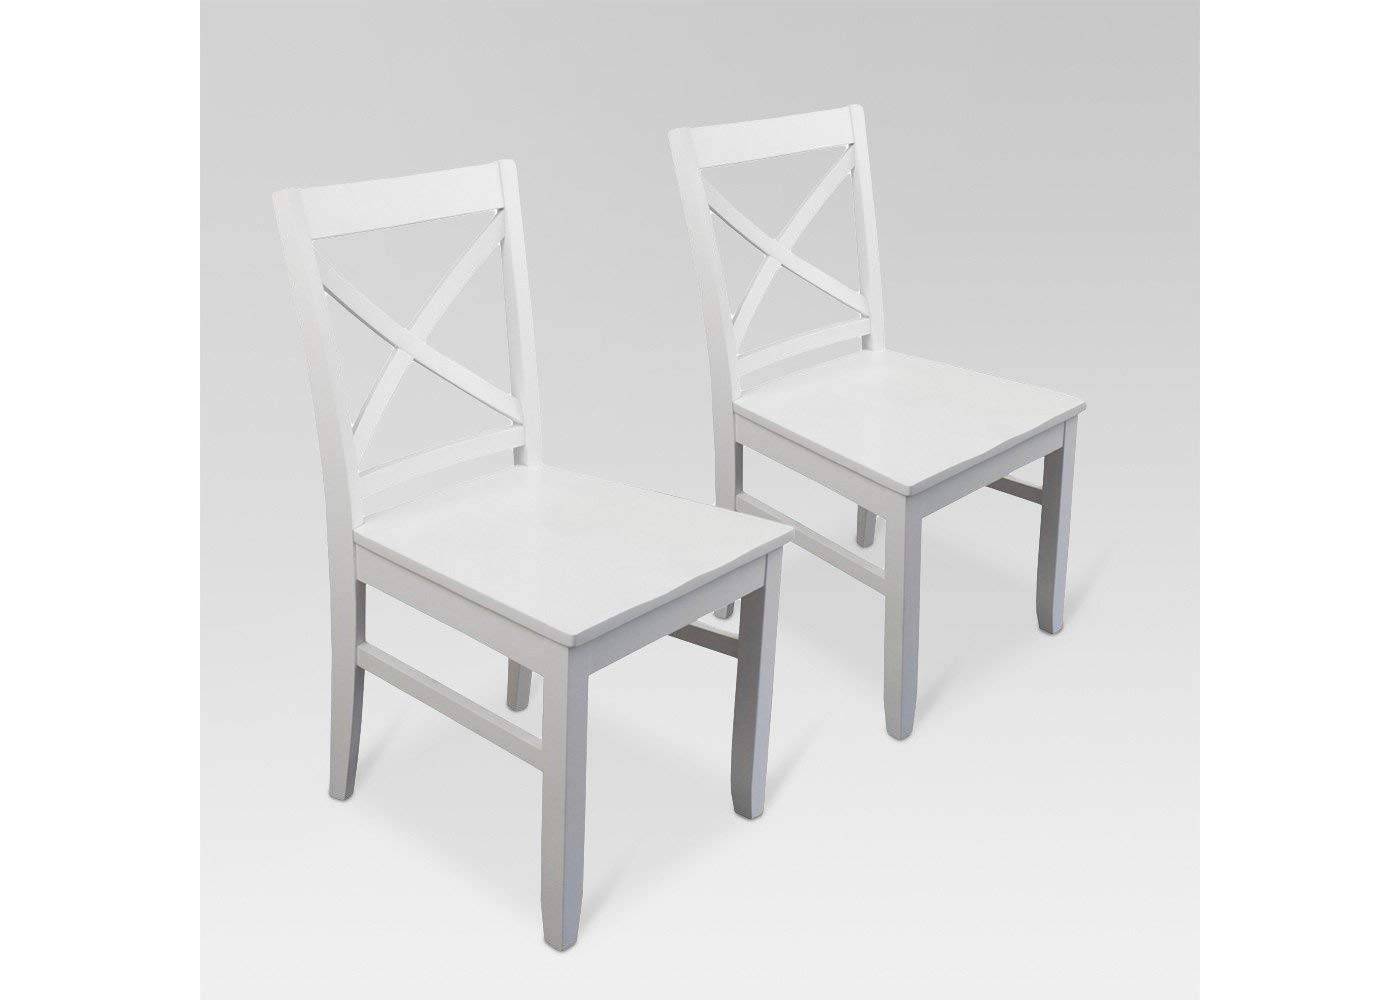 Fine Amazon Com Carey Dining Chair White Set Of 2 Pabps2019 Chair Design Images Pabps2019Com